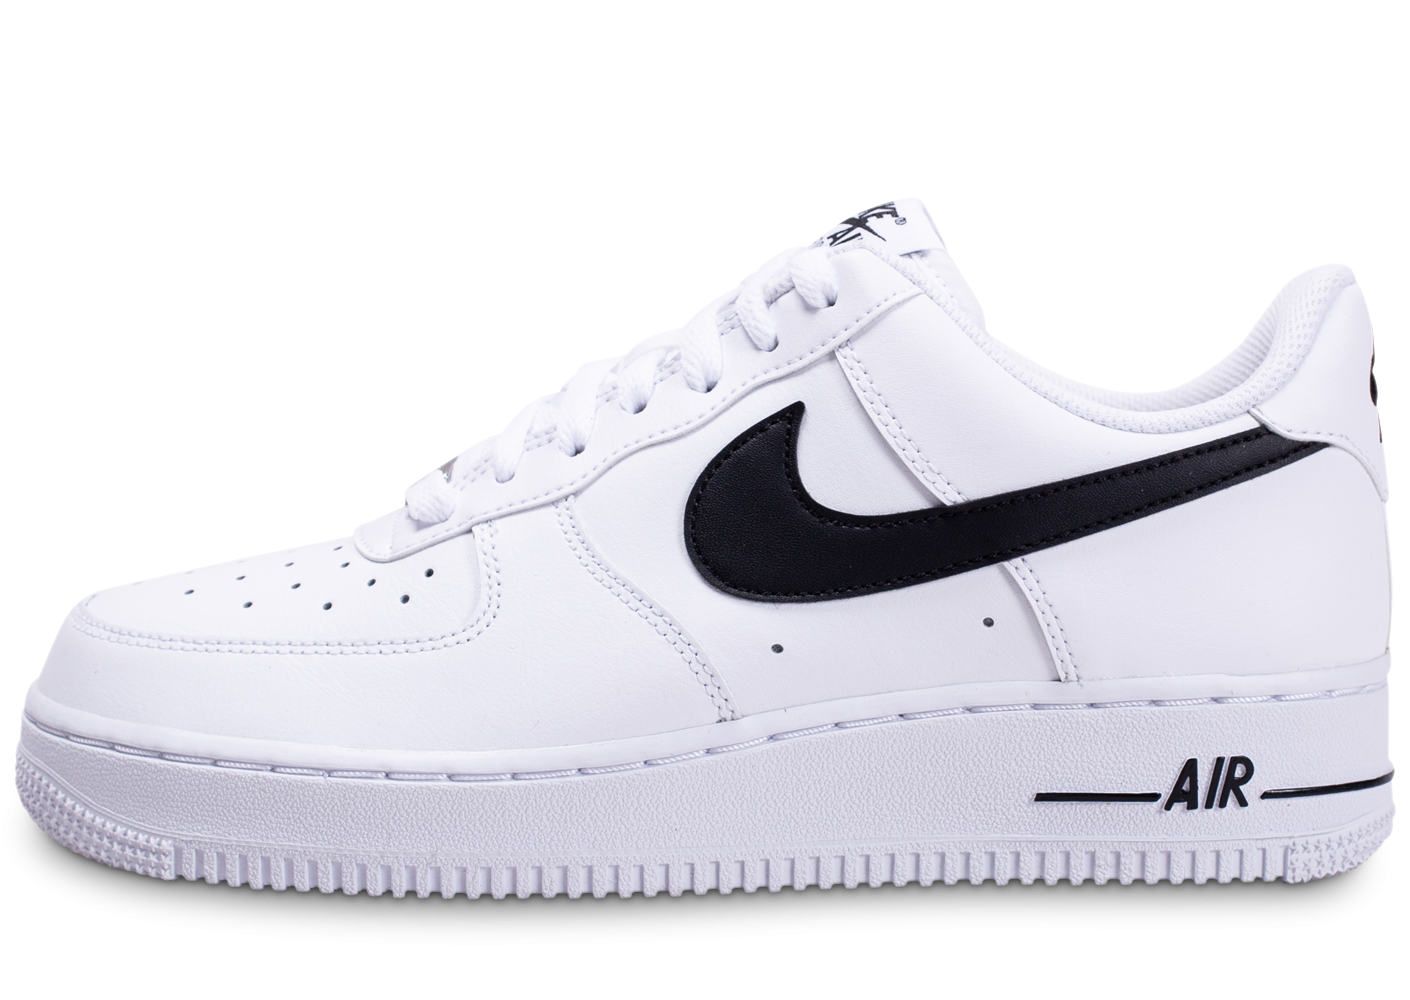 Nike Air Force 1'07 blanche et noire - Chaussures Baskets homme ...